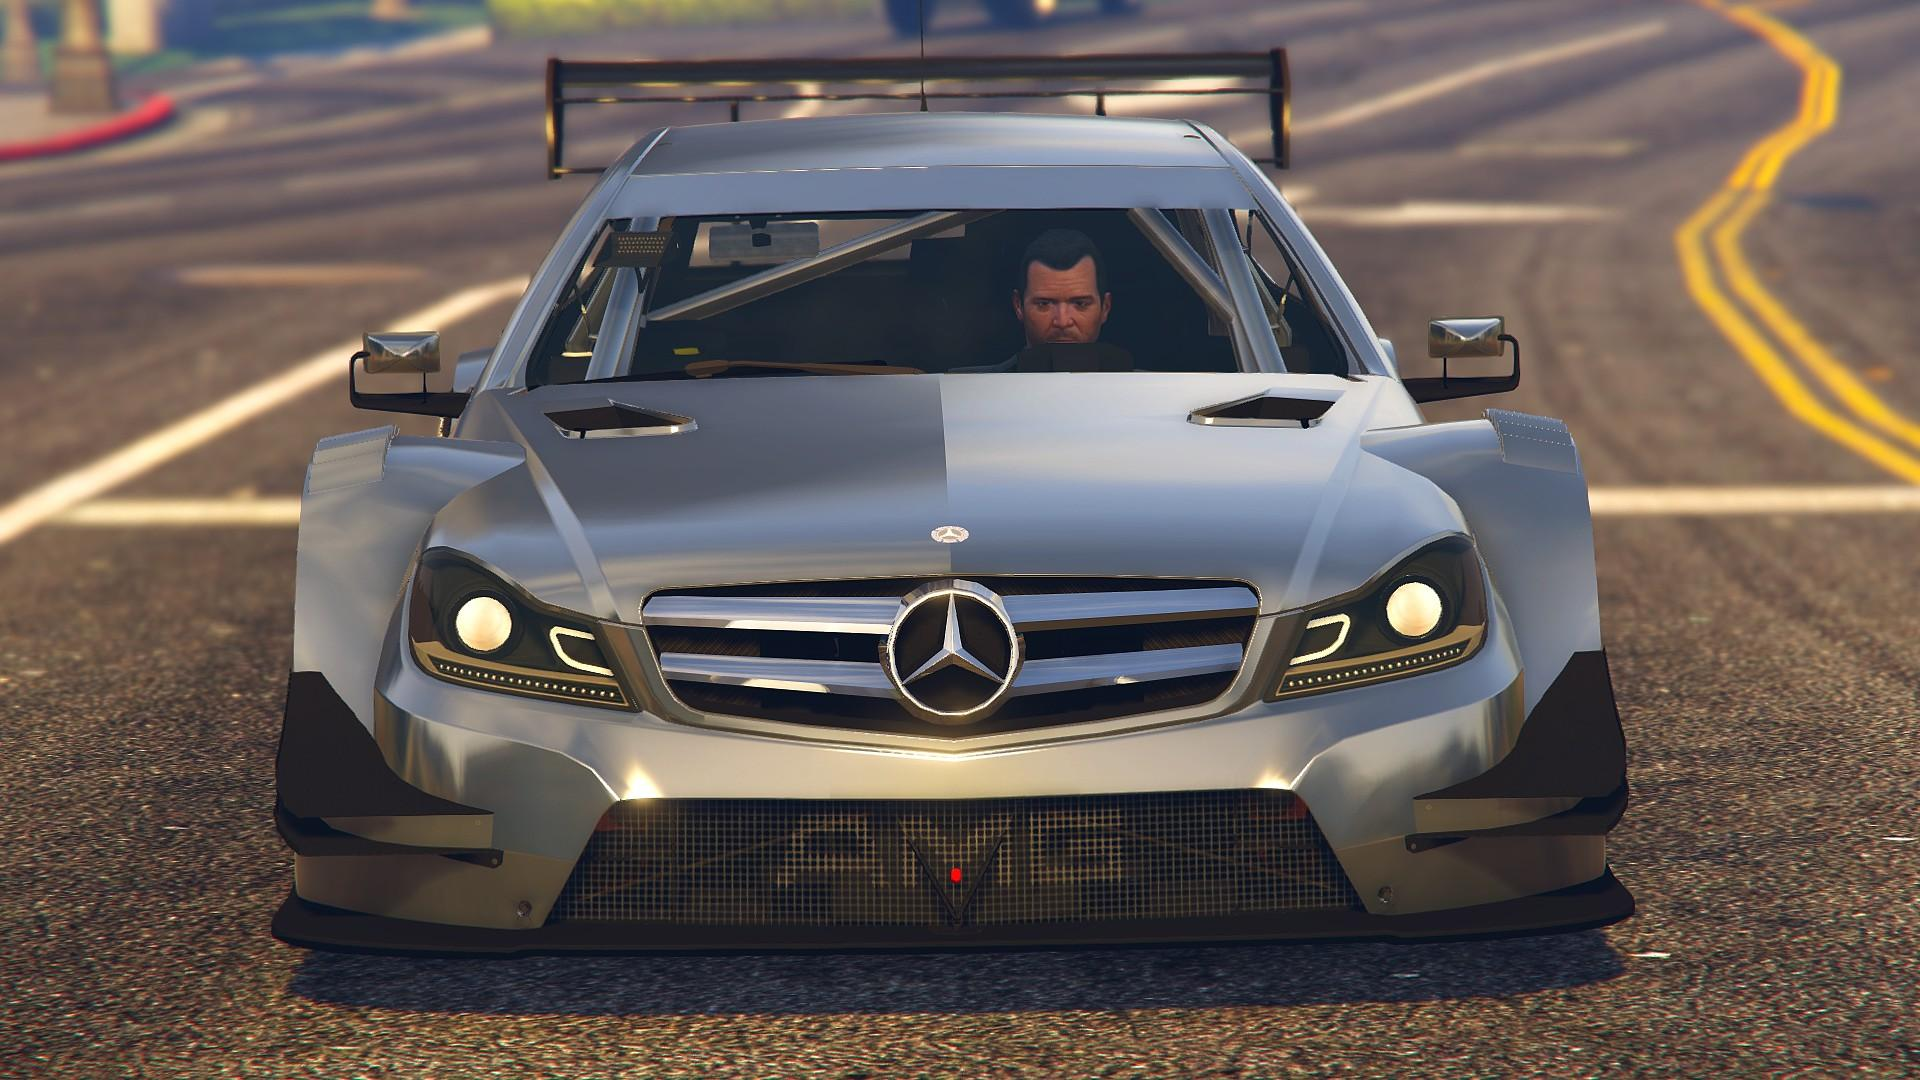 2013 mercedes benz amg dtm c204 gta5